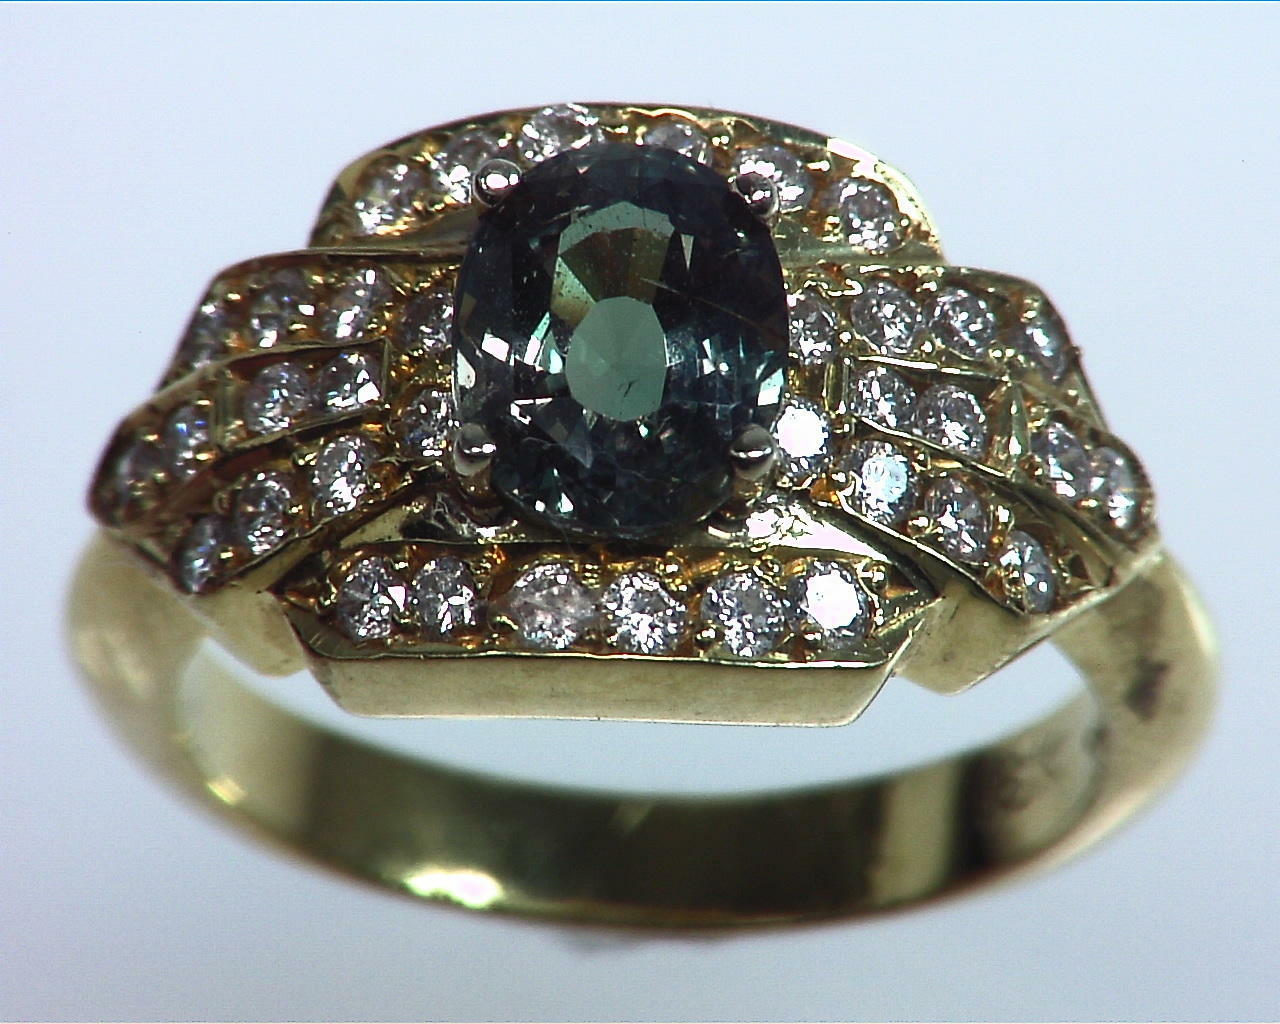 Alexandrite Natural Genuine Gemstone With Diamonds, Yellow Gold Ring RSS,309